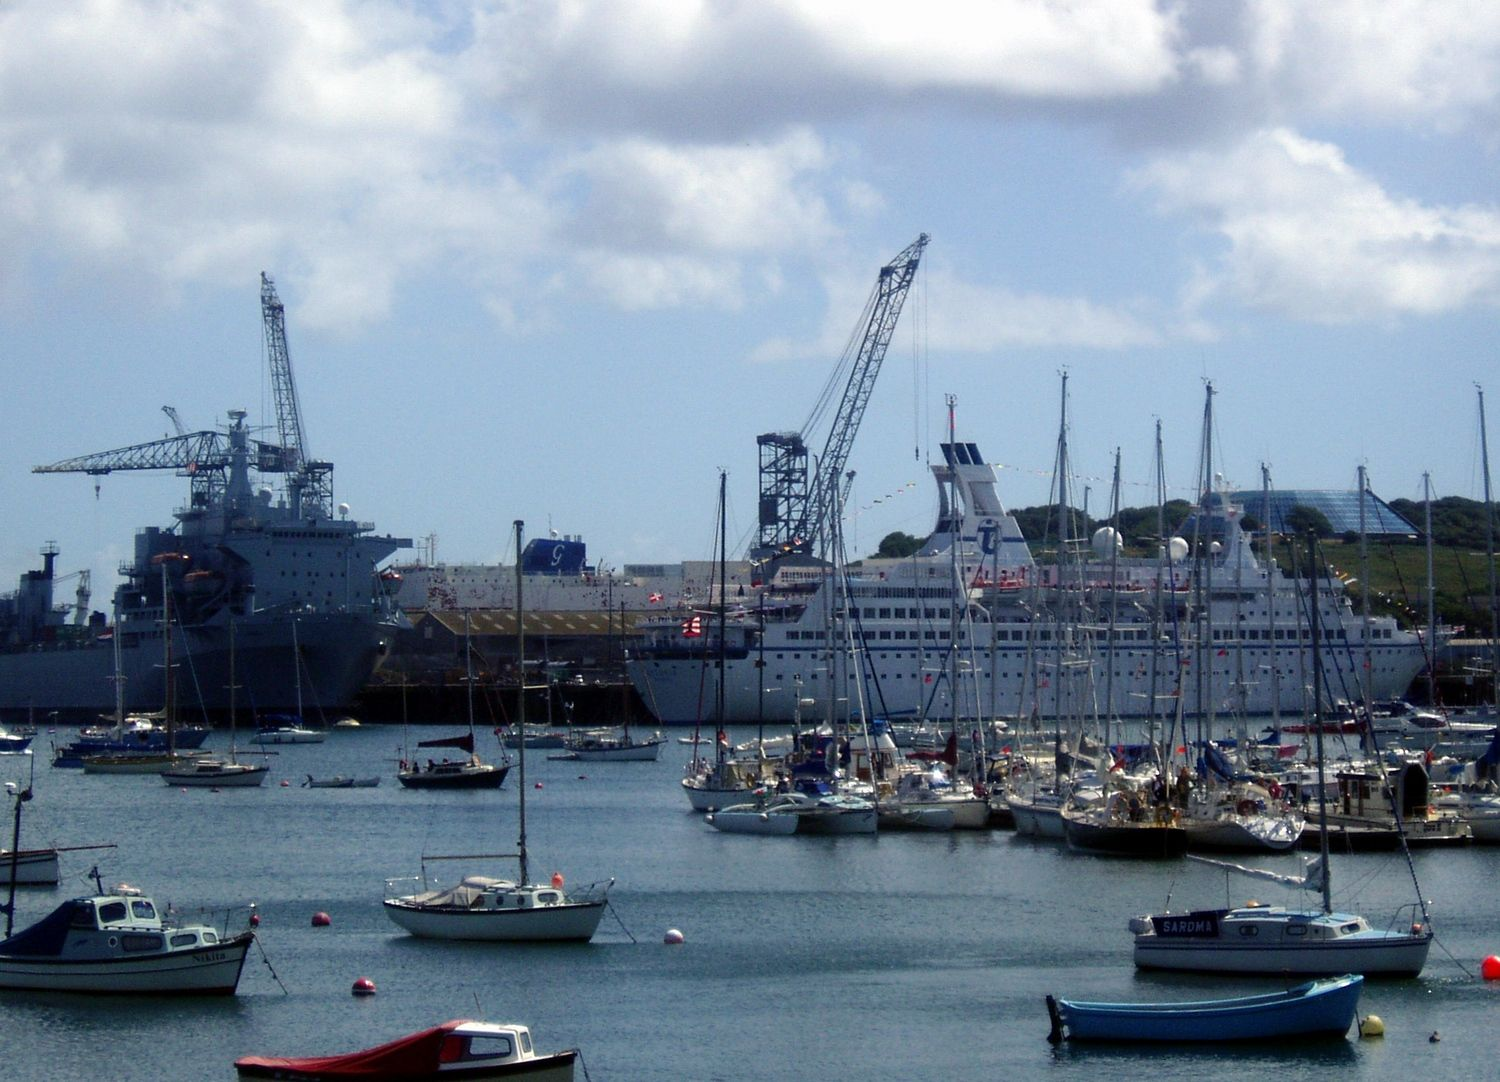 Falmouth Docks, Cornwall, England, one of the largest natural harbors in the world.